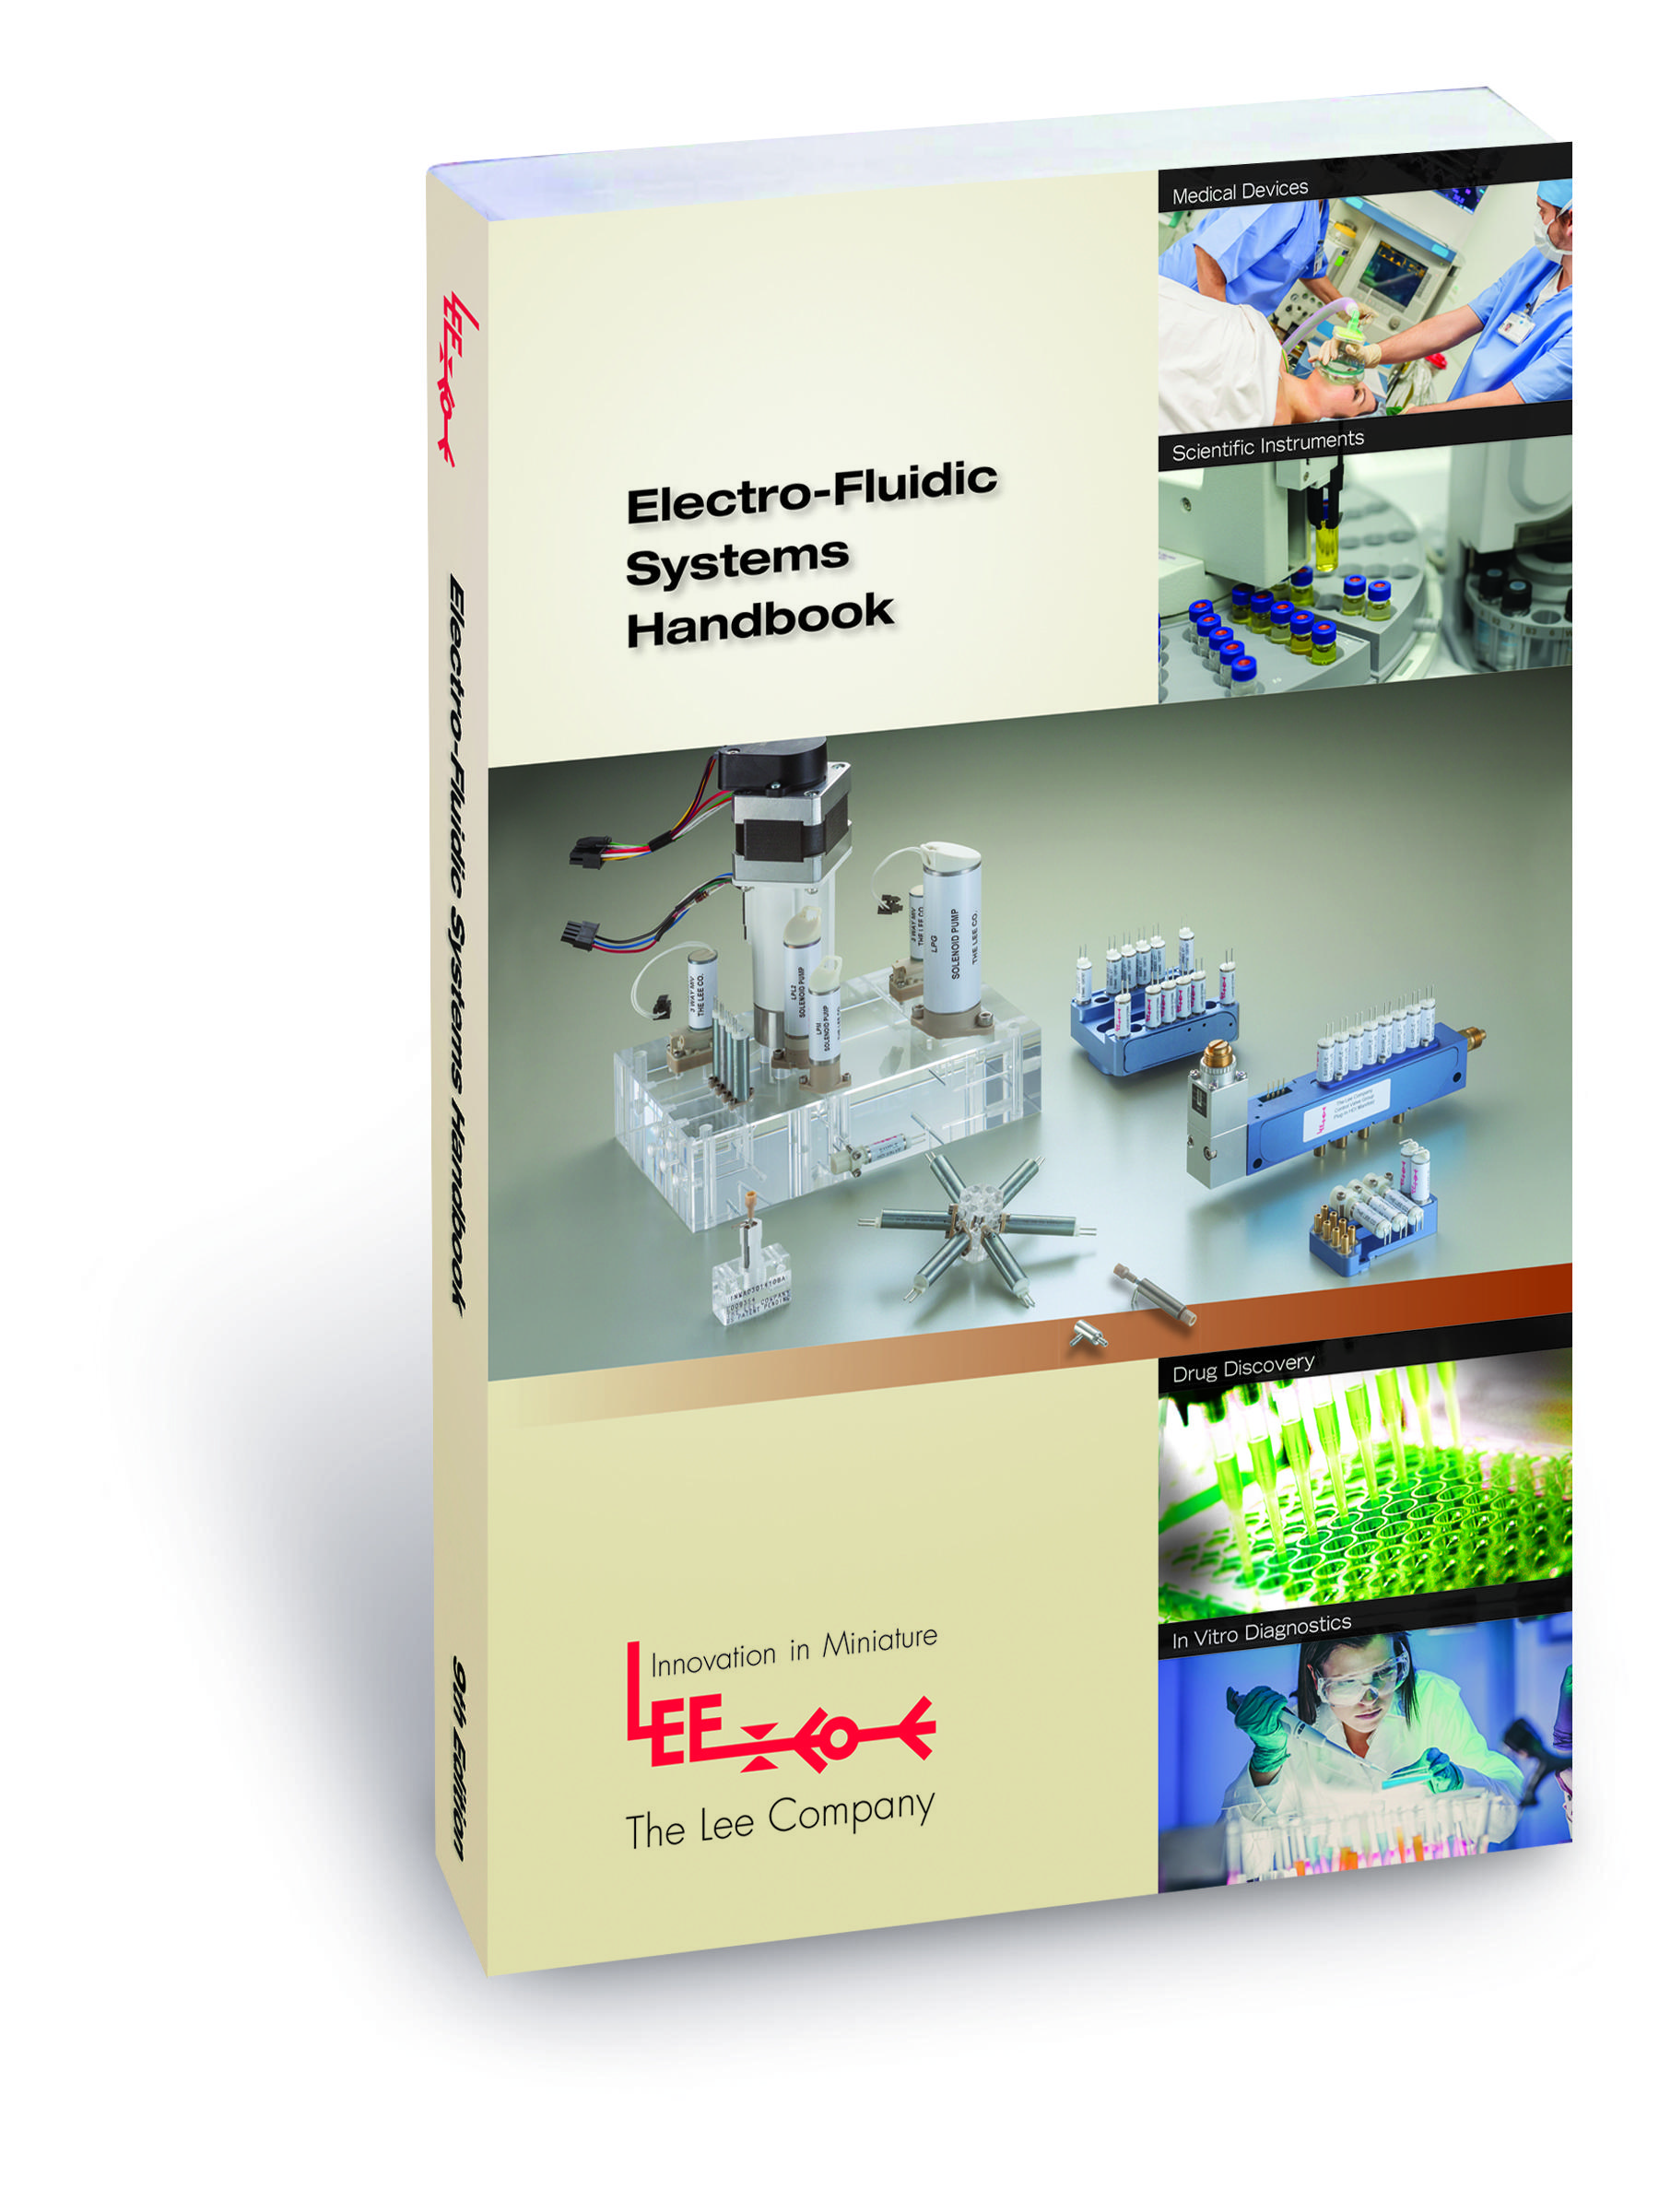 Electro-Fluidic Systems Handbook: 9th Edition